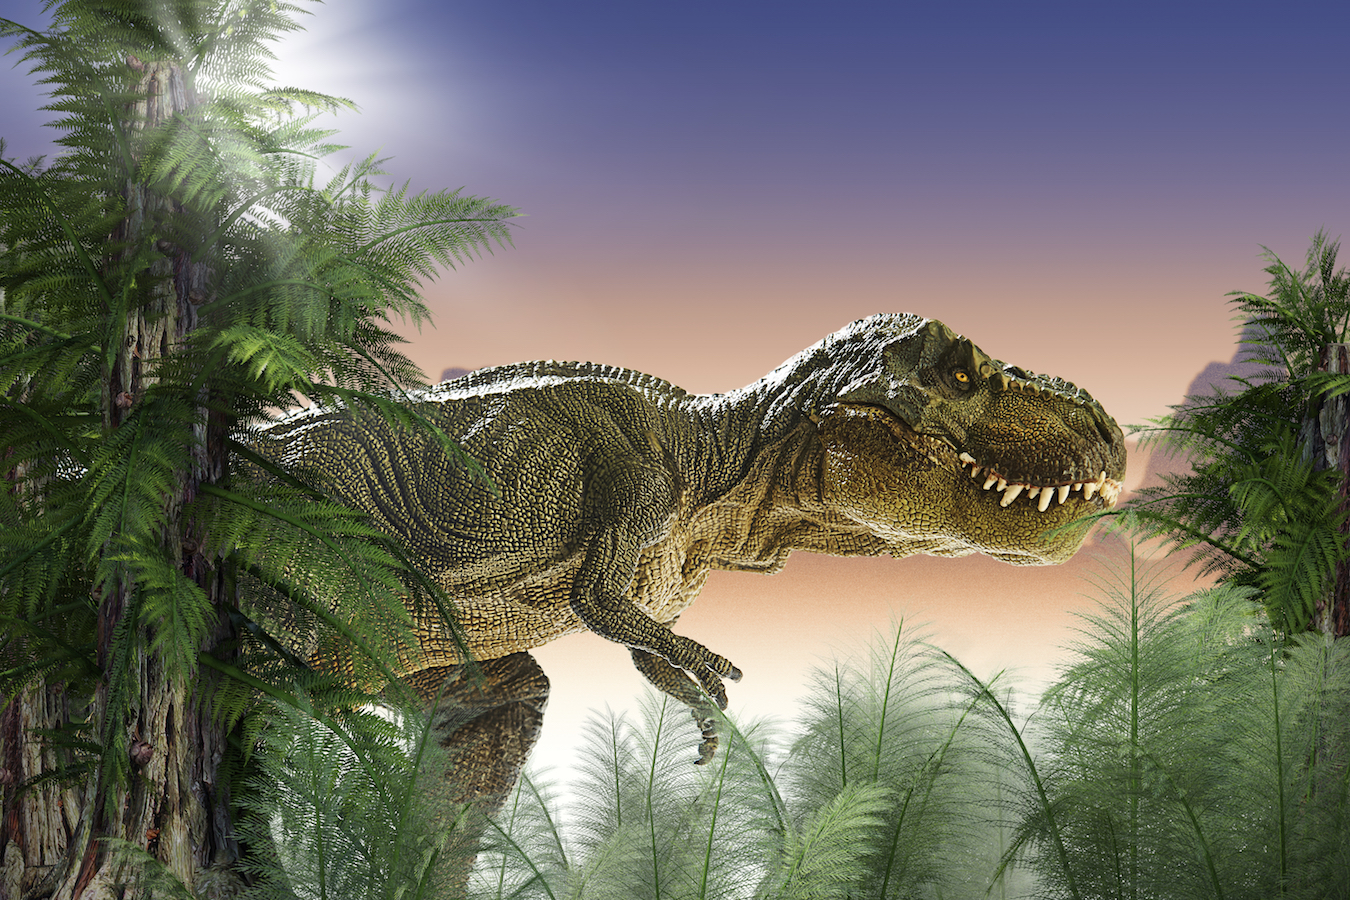 New fossil evidence shows that T-Rex tongues were rooted to the bottoms of their mouths, similar to alligators.